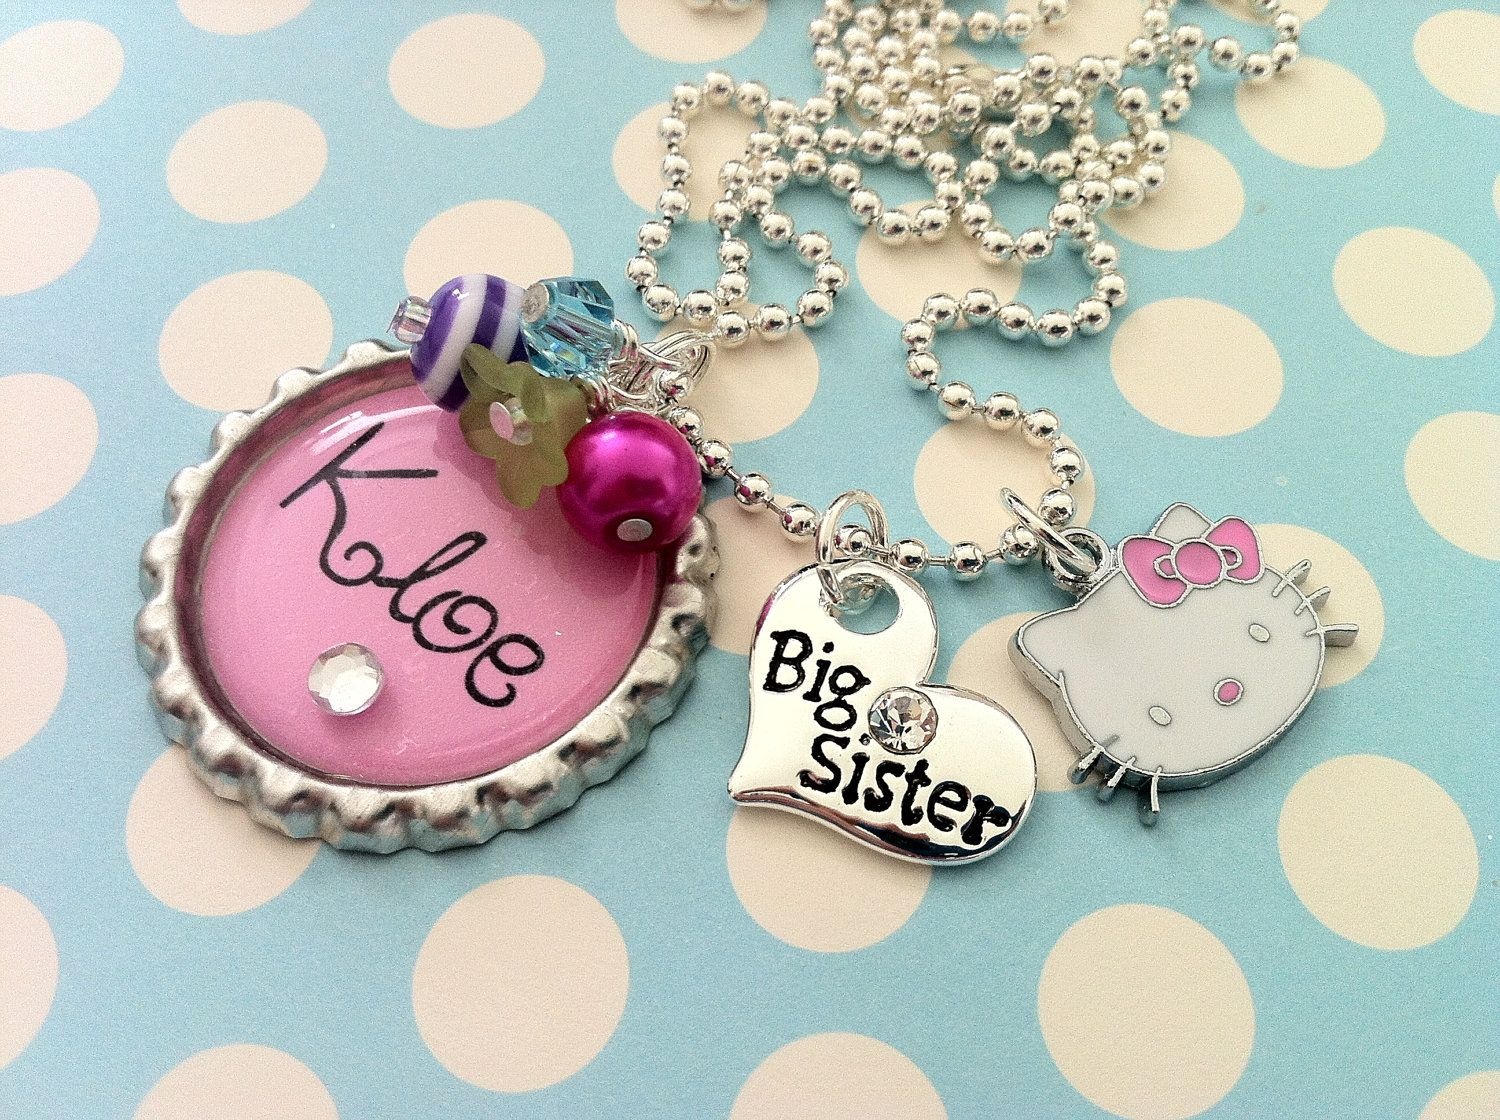 Personalized Girl's Charm Necklace Pink Big Sister Bottle Cap Children's Jewelry Gift. $23.00, via Etsy.